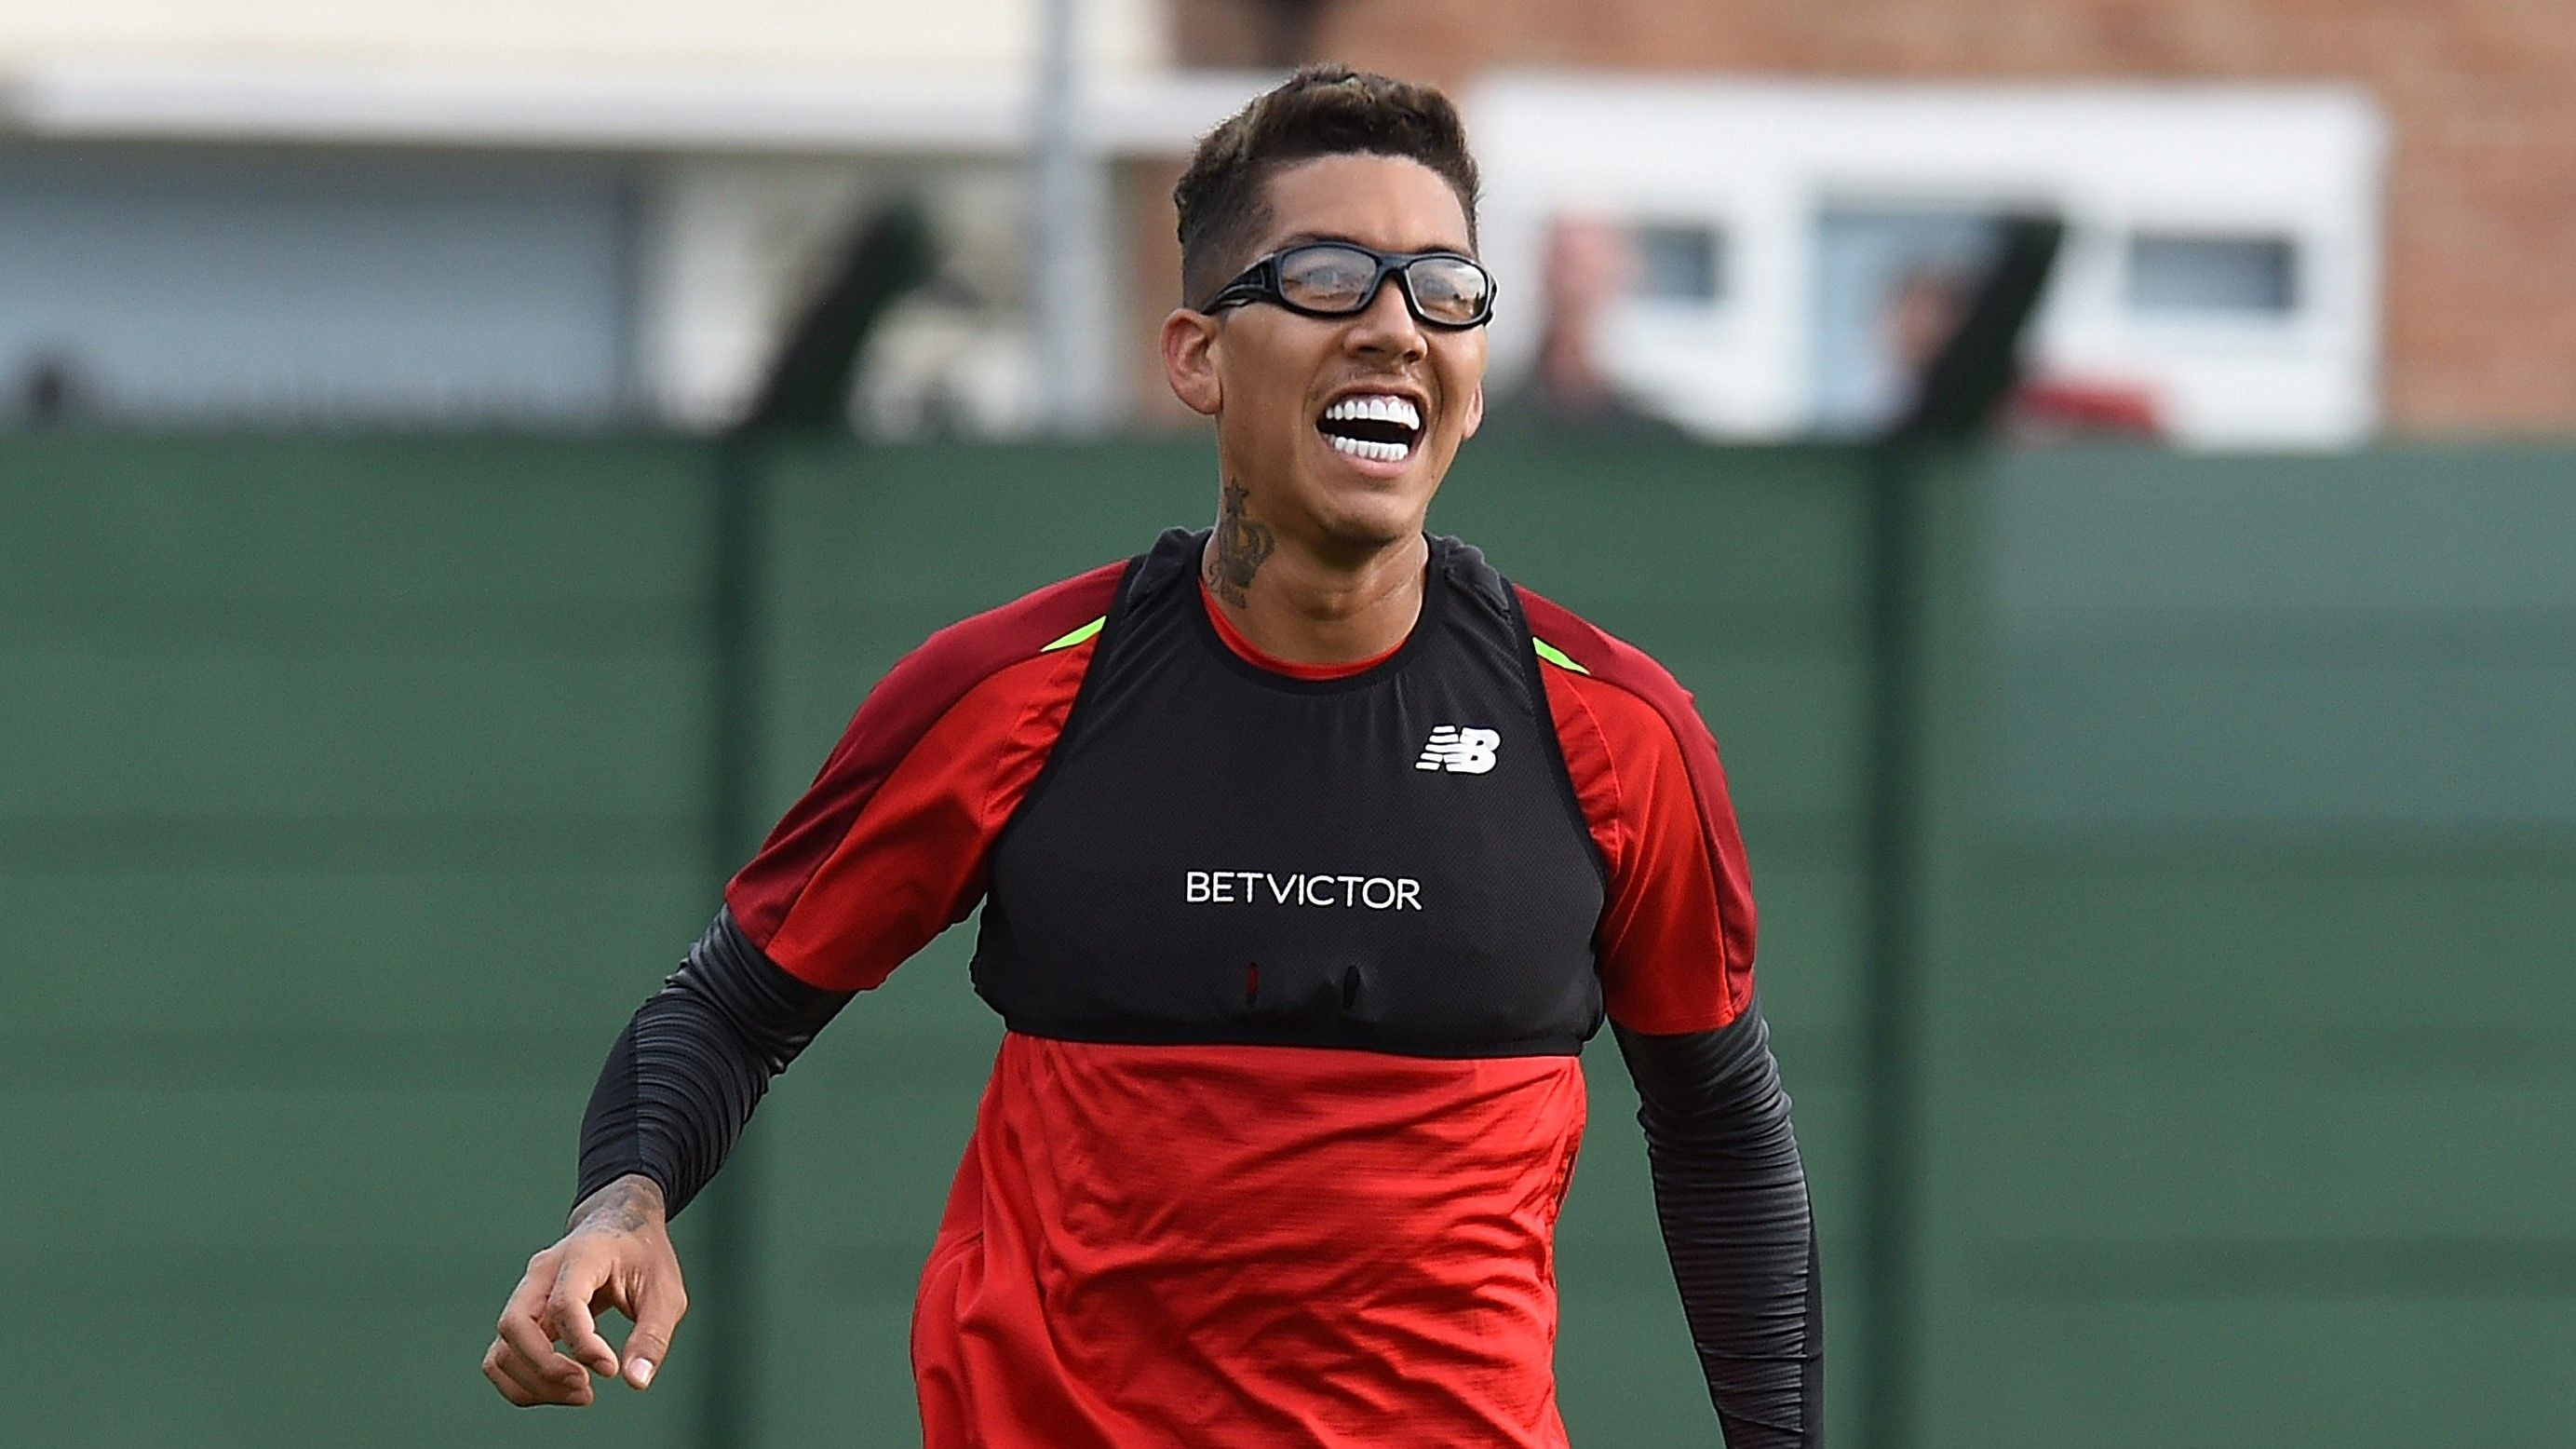 Liverpool's Roberto Firmino wears goggles to a training session.